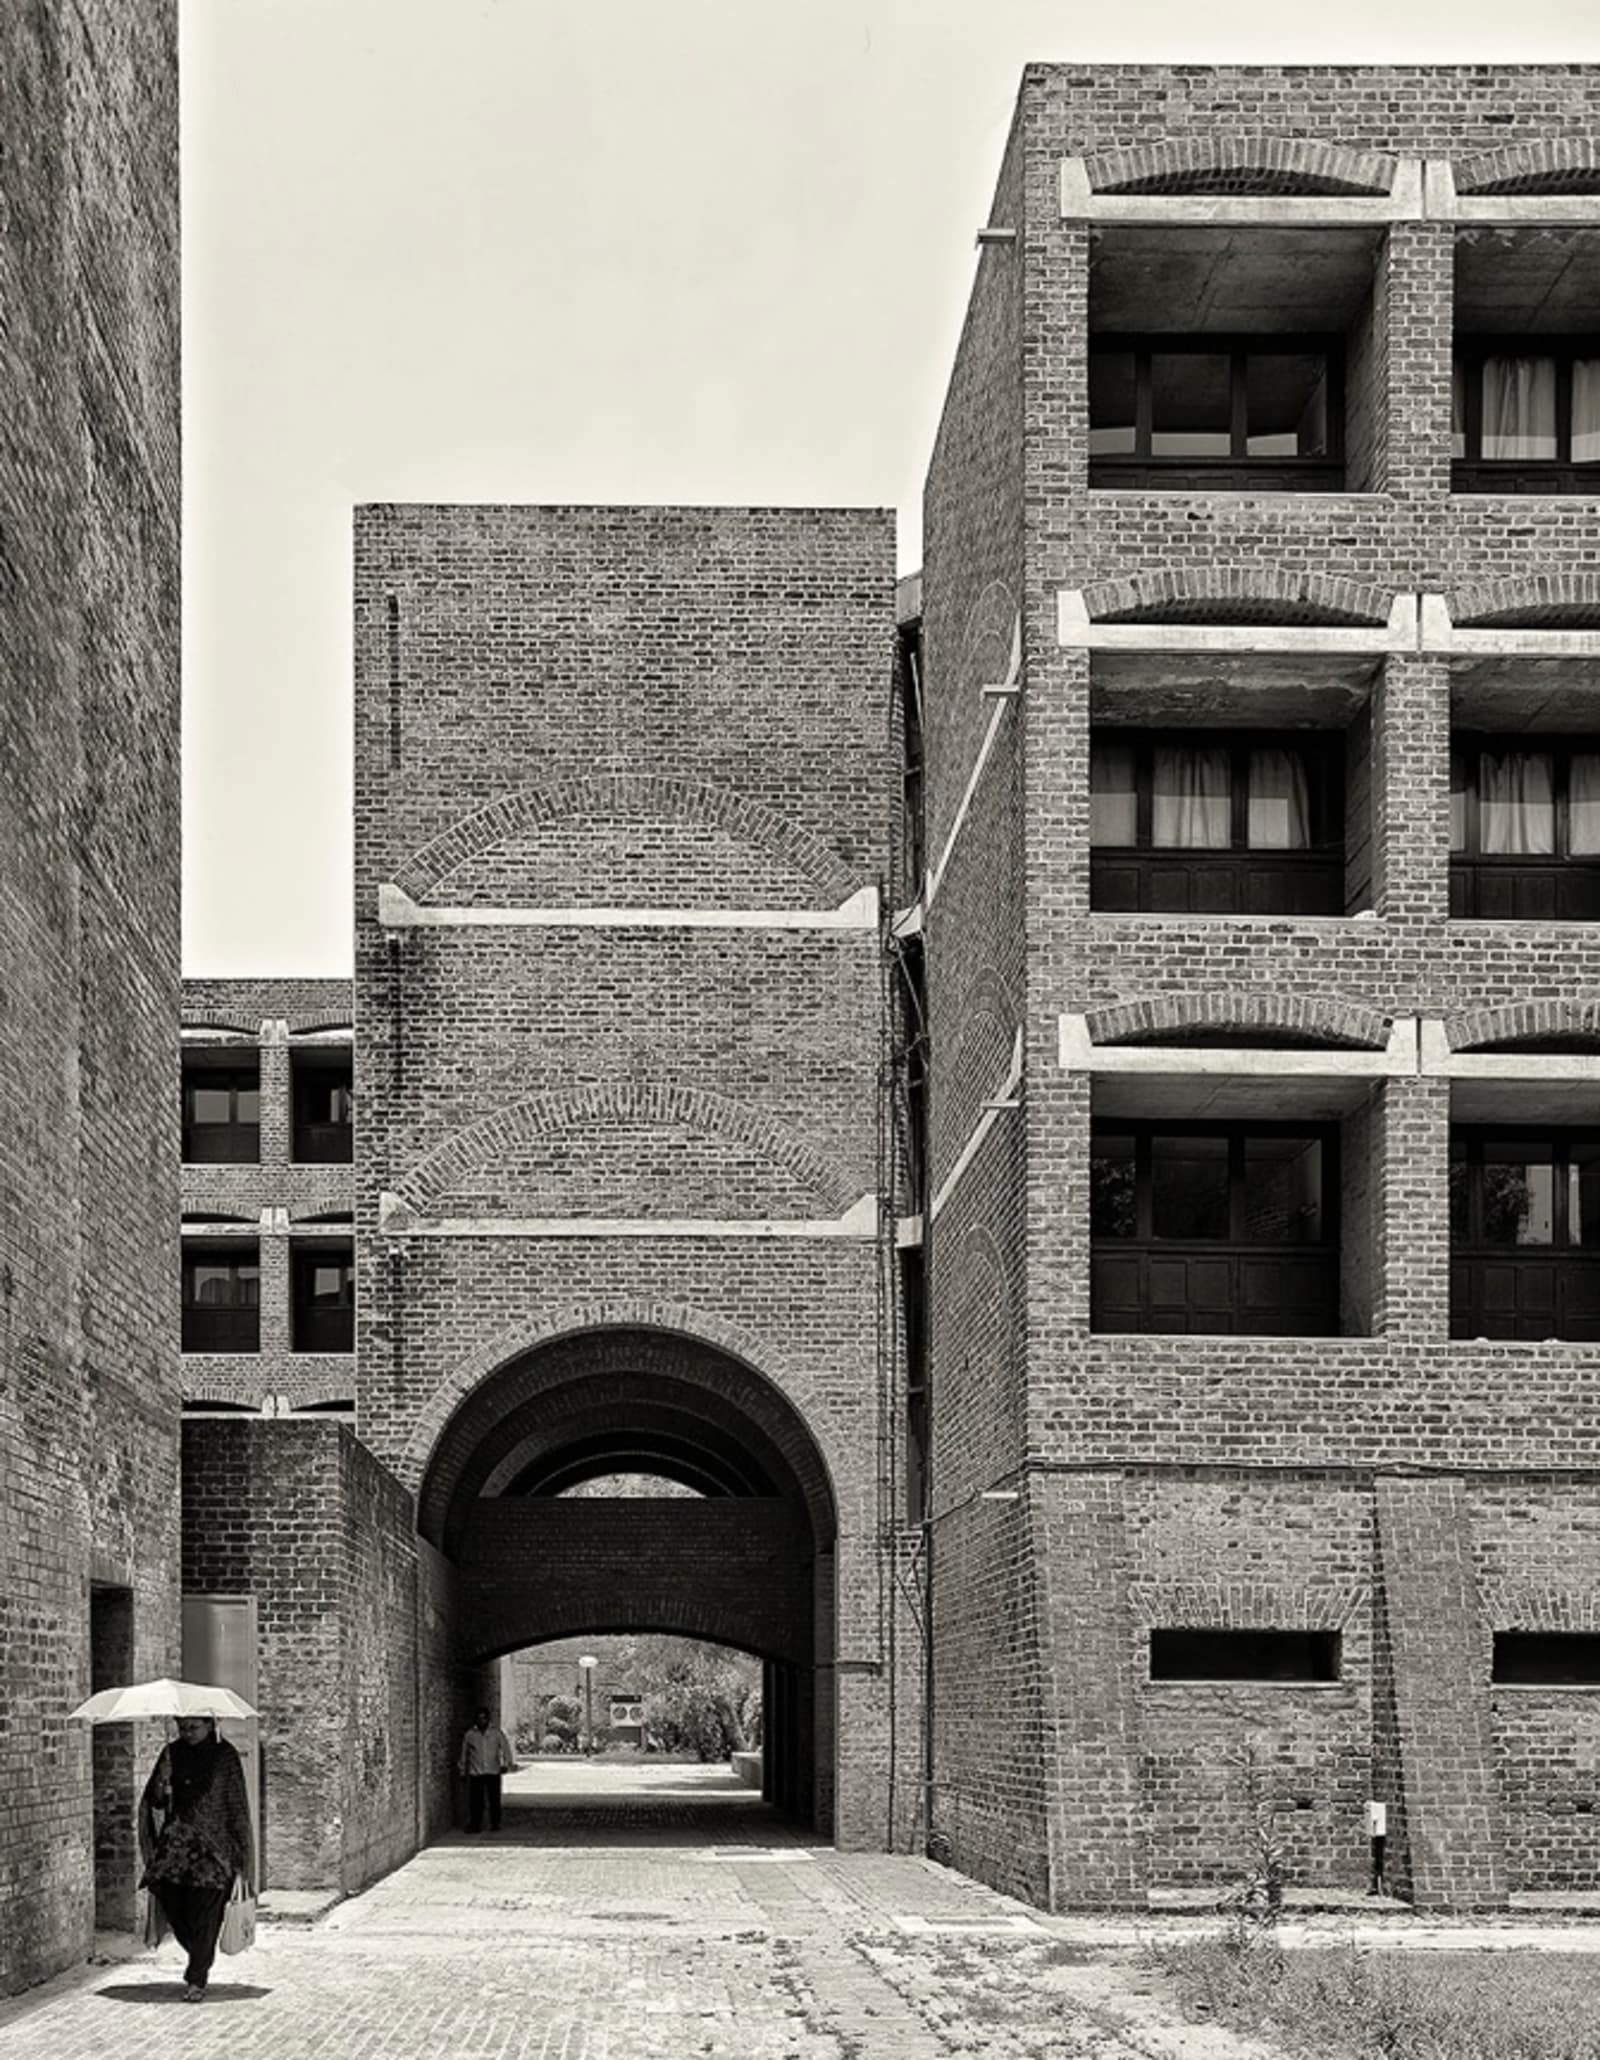 louis-i-kahn-cemal-emden-cemal-emden-indian-institute-of-management-ahmedabad-12.jpeg